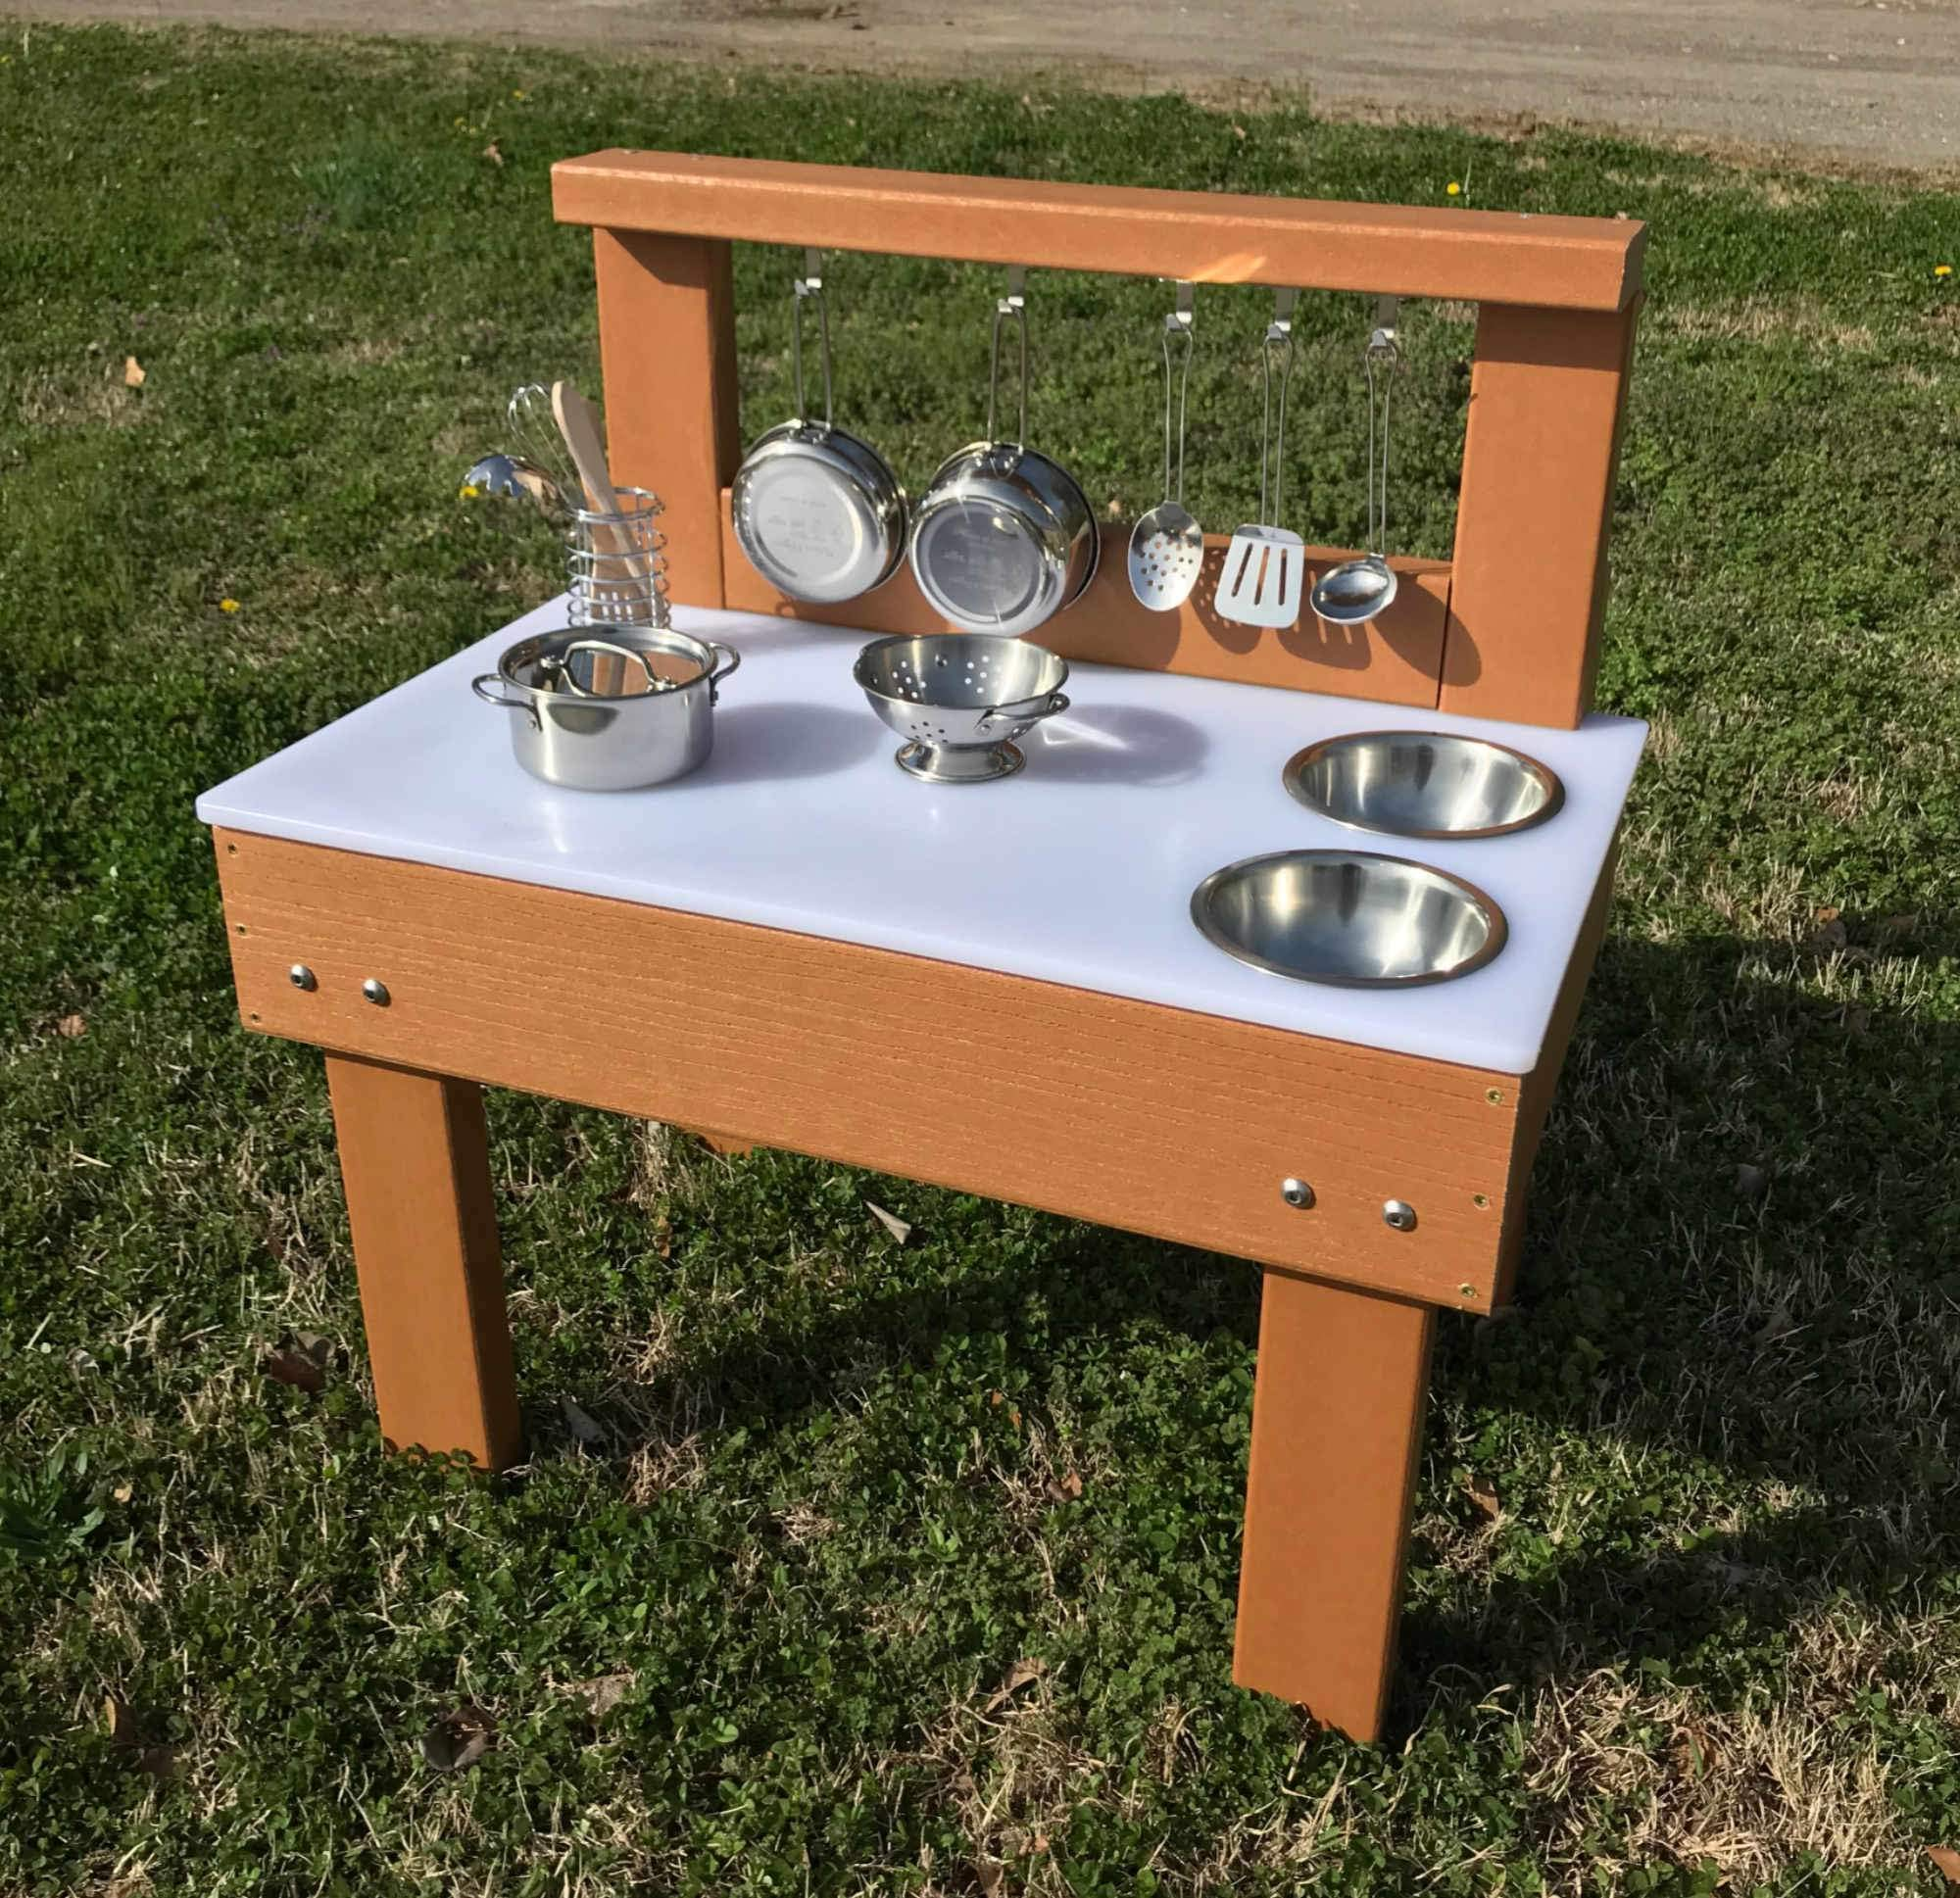 Kids' Station Indoor/Outdoor Toddler Kitchen by Kid's Station Outdoor (Image #2)